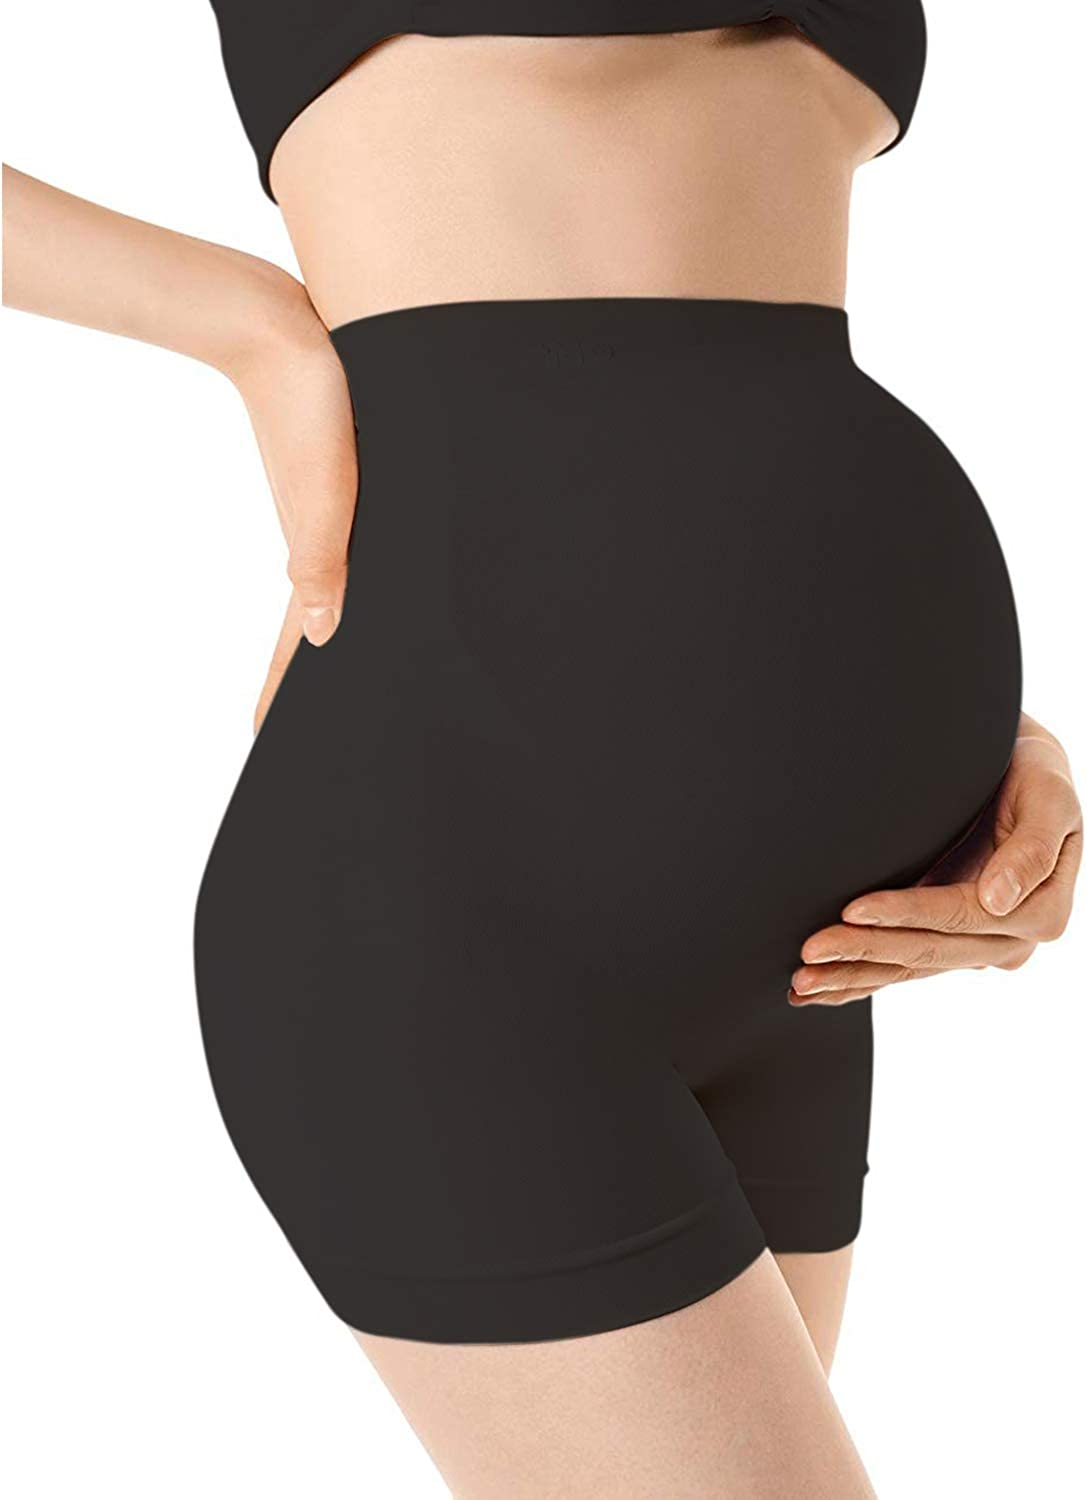 +MD Seamless Maternity Underwear High Waist Belly Support Shapewear Over Bump Mid-Thigh Pregnancy Panties for Dresses